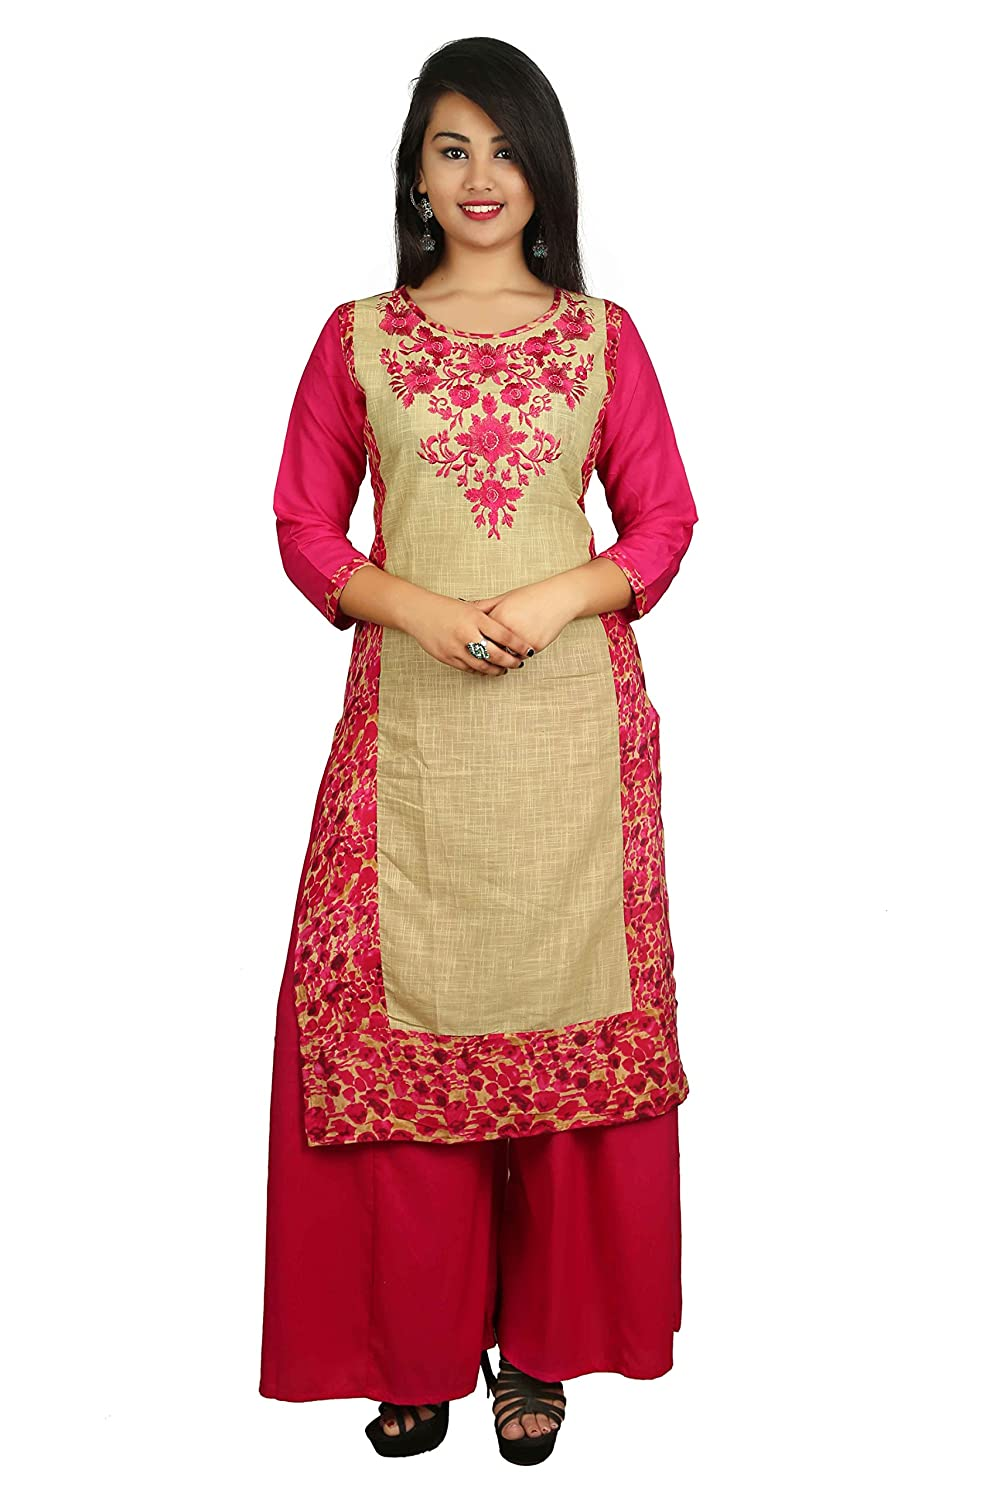 Pink Embroidered 3/4 Sleeve Cotton Women's Kurta and Palazzo Set Indian Handicrfats Export D08-Pink-Pink-XXL